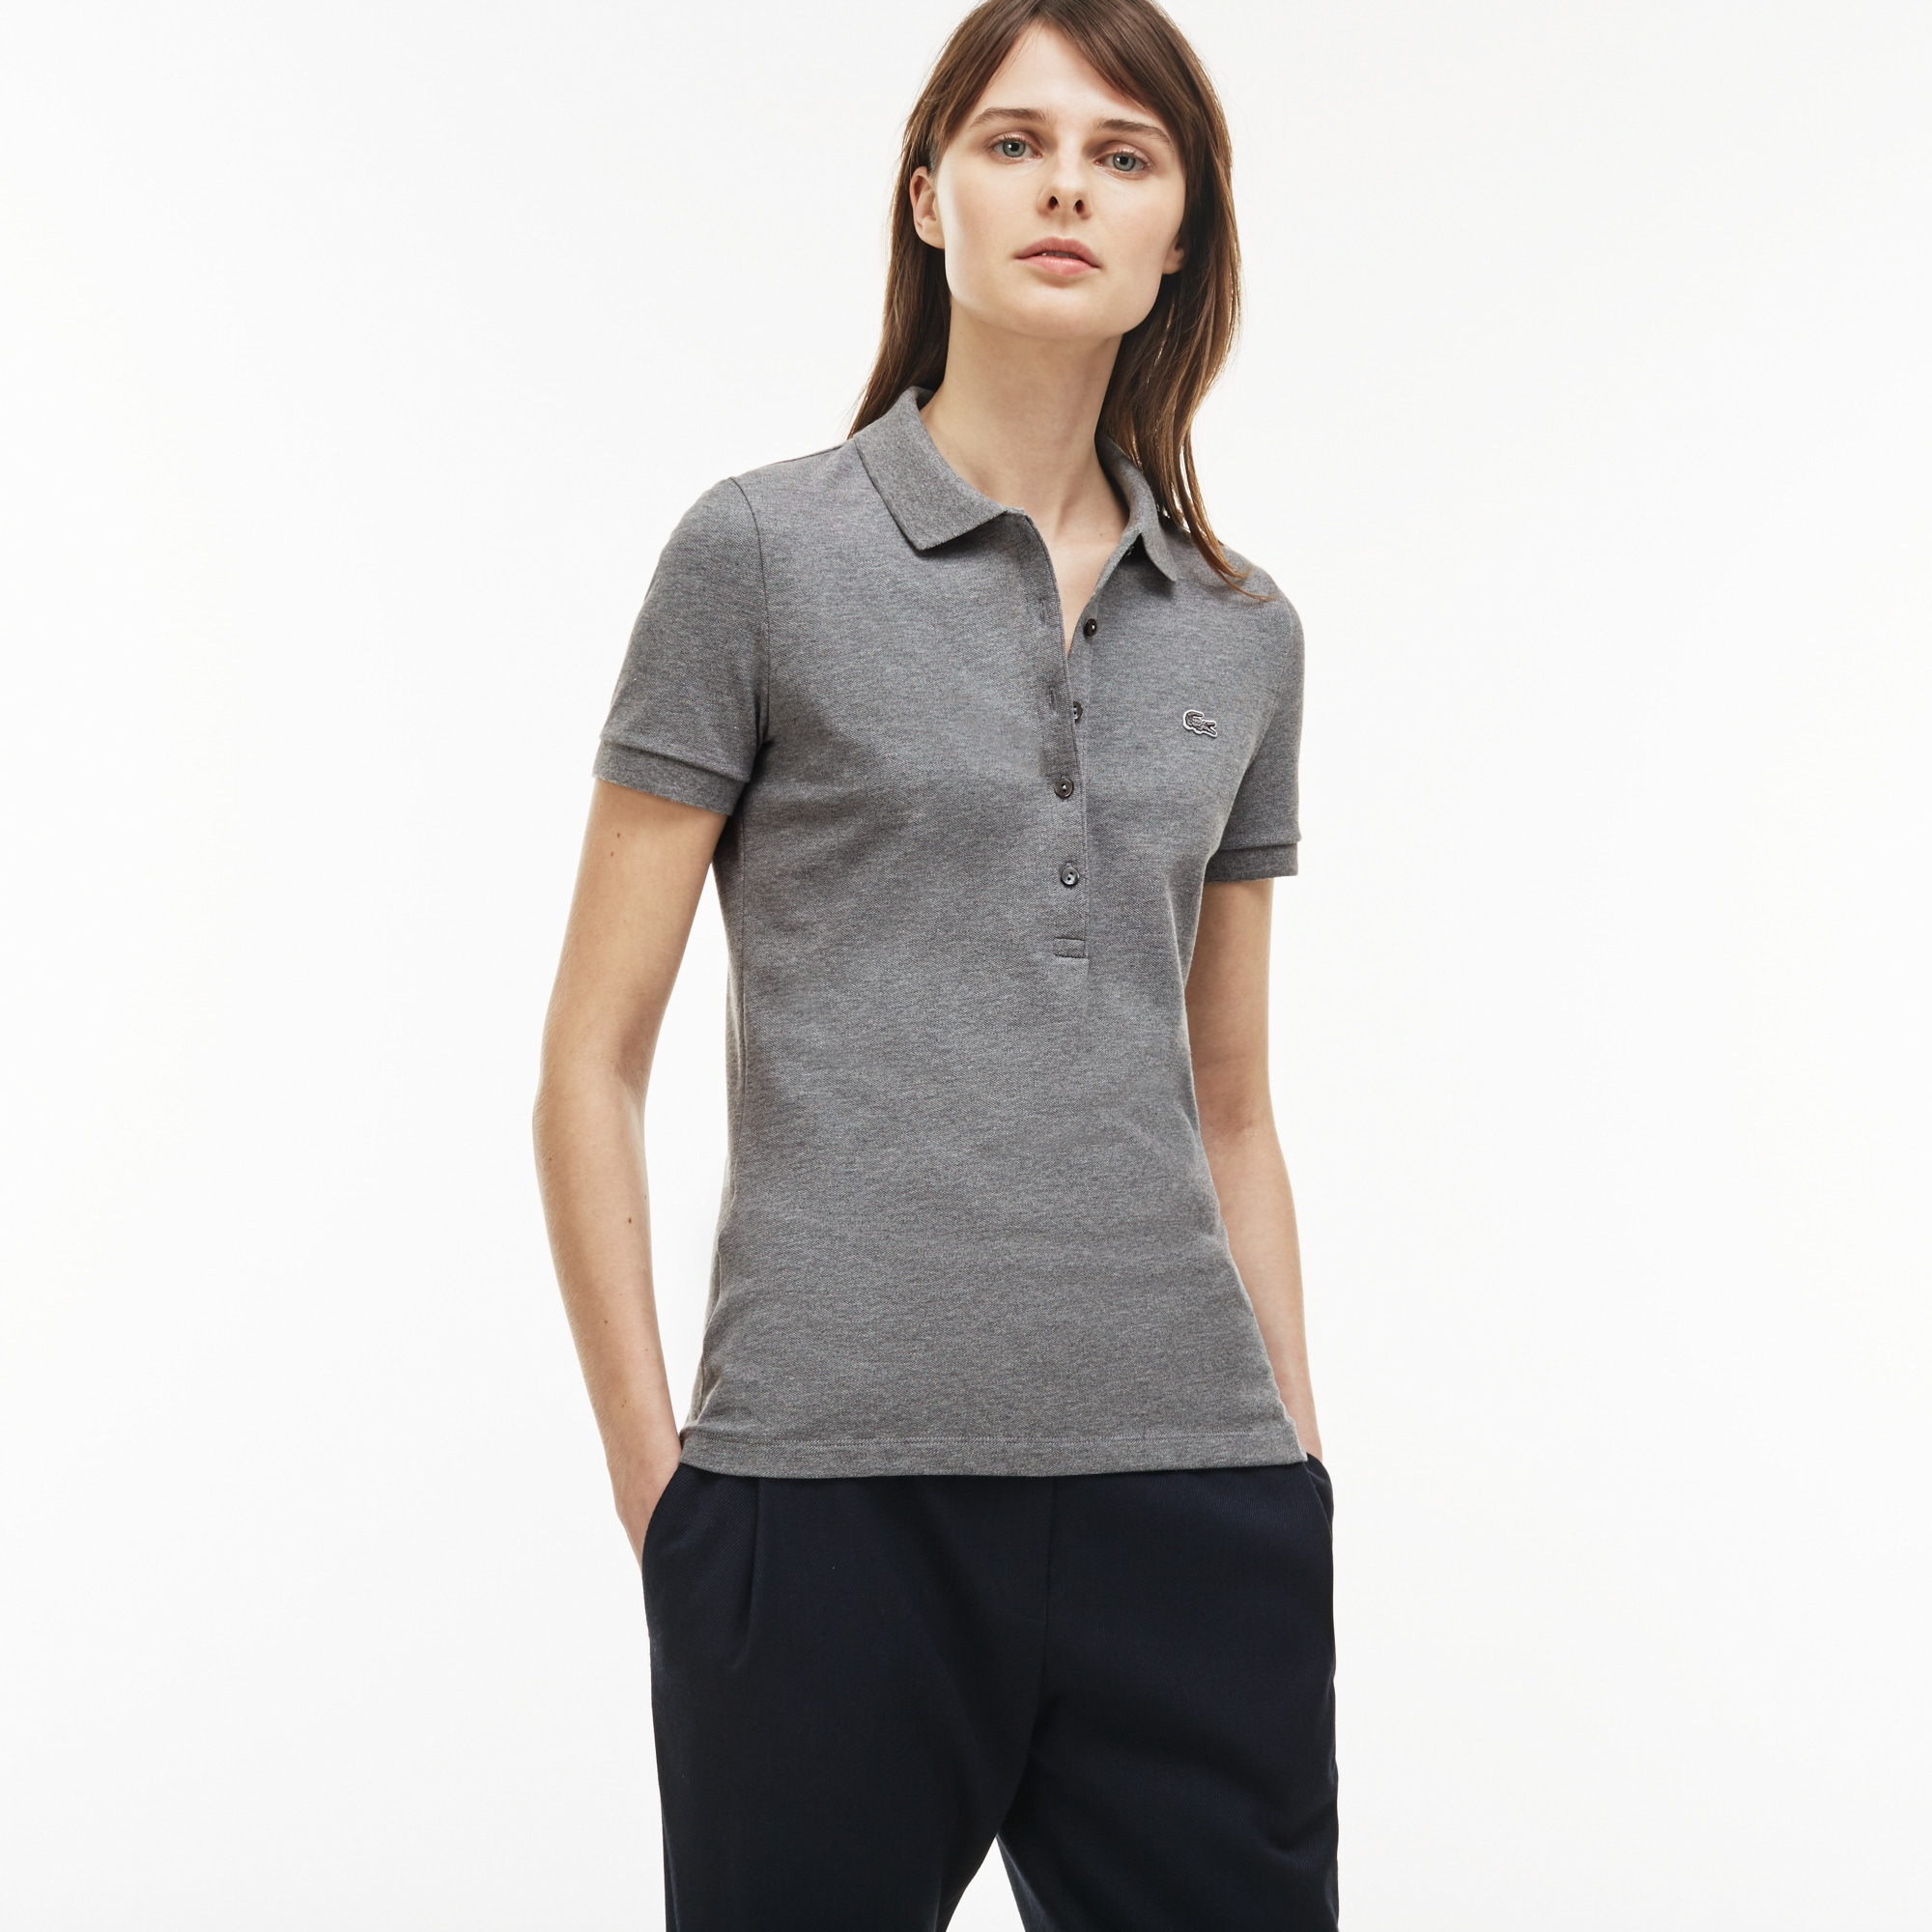 f10c971fca5 Women's Polo Shirts | Women's Fashion| LACOSTE